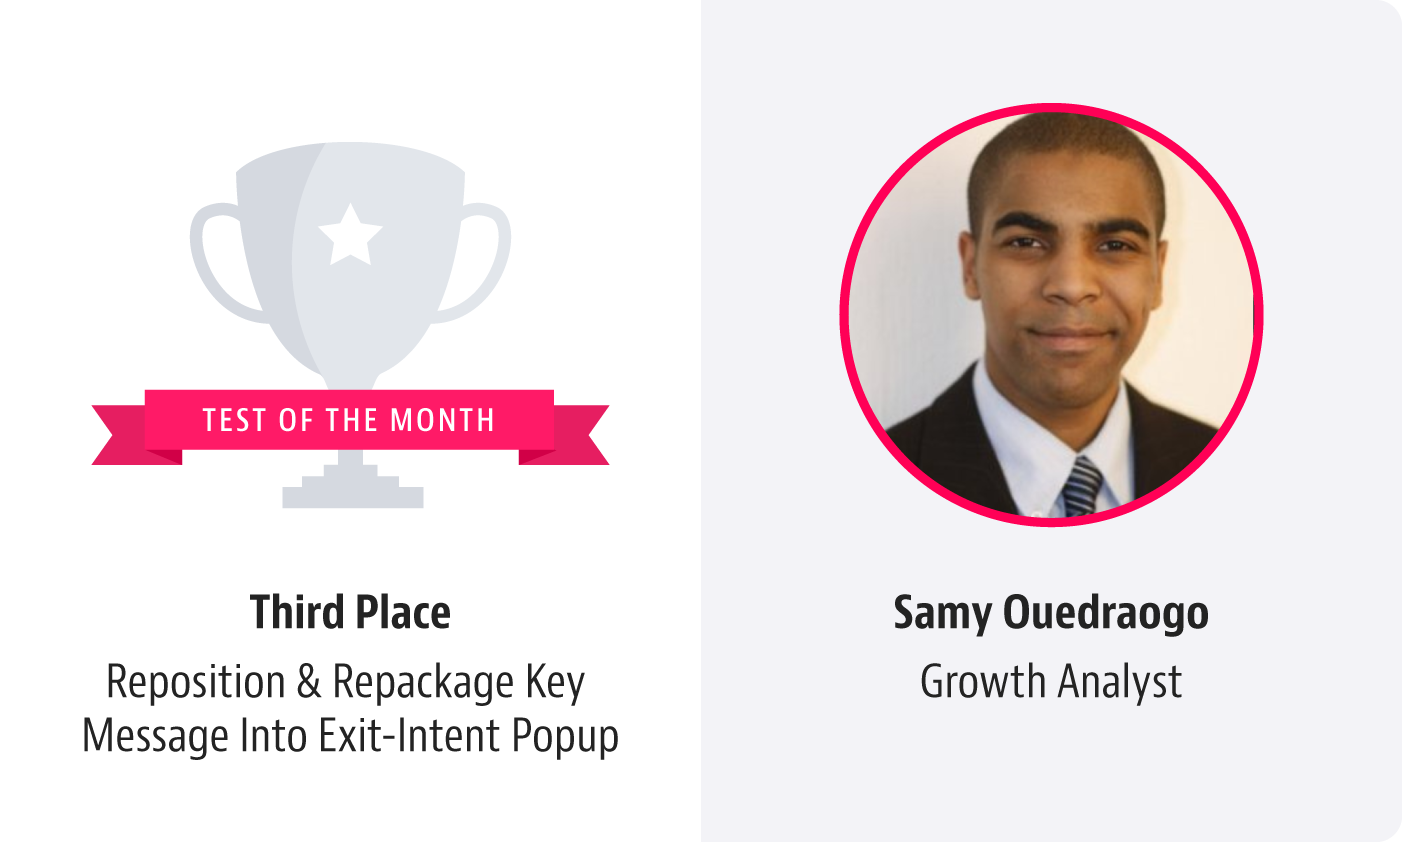 ladder test of the month Reposition and Repackage Key Message Into Exit-Intent Popup Samy Ouedraogo